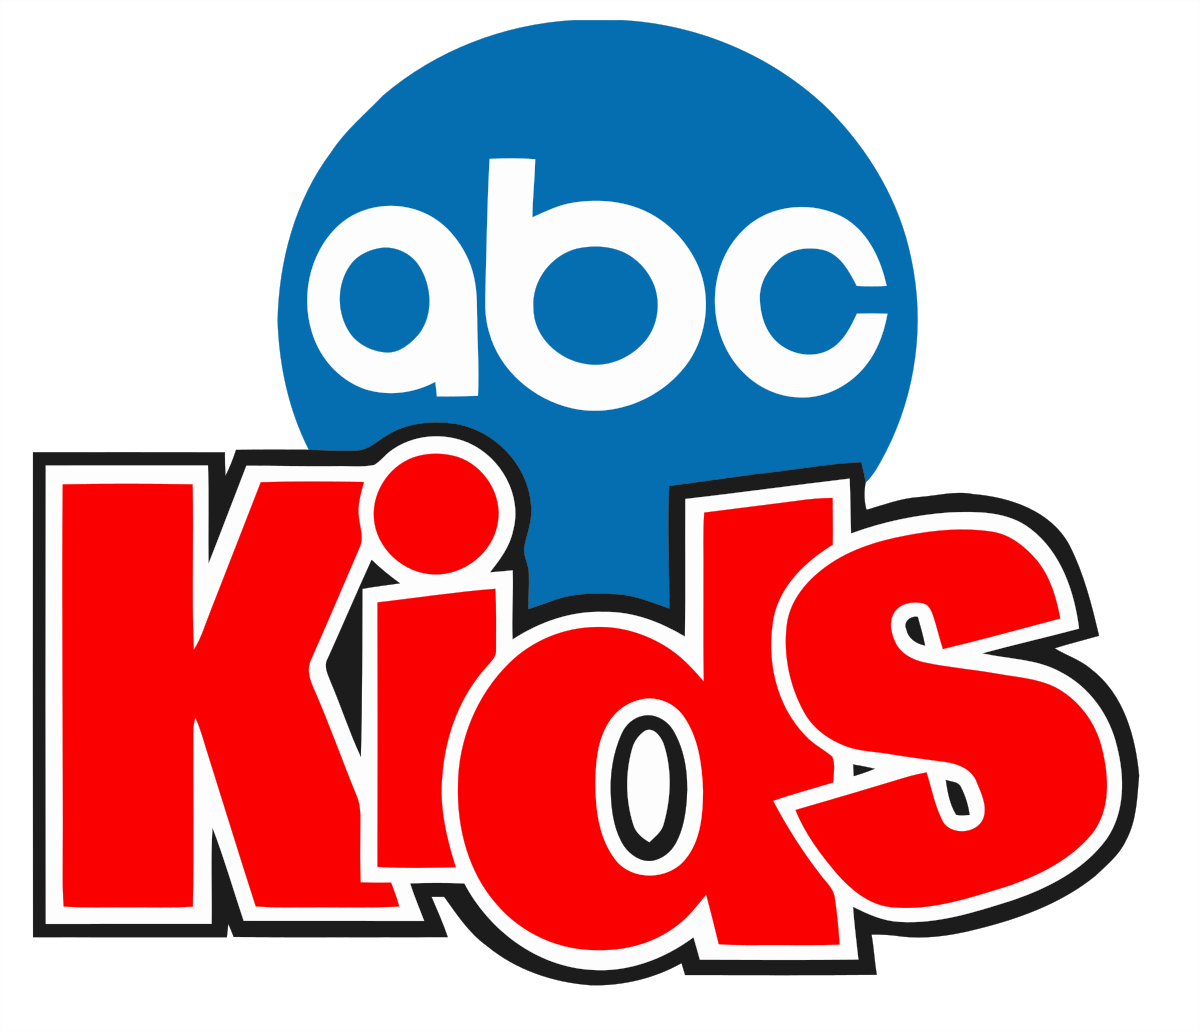 Number 1 clipart block. Abc kids united states